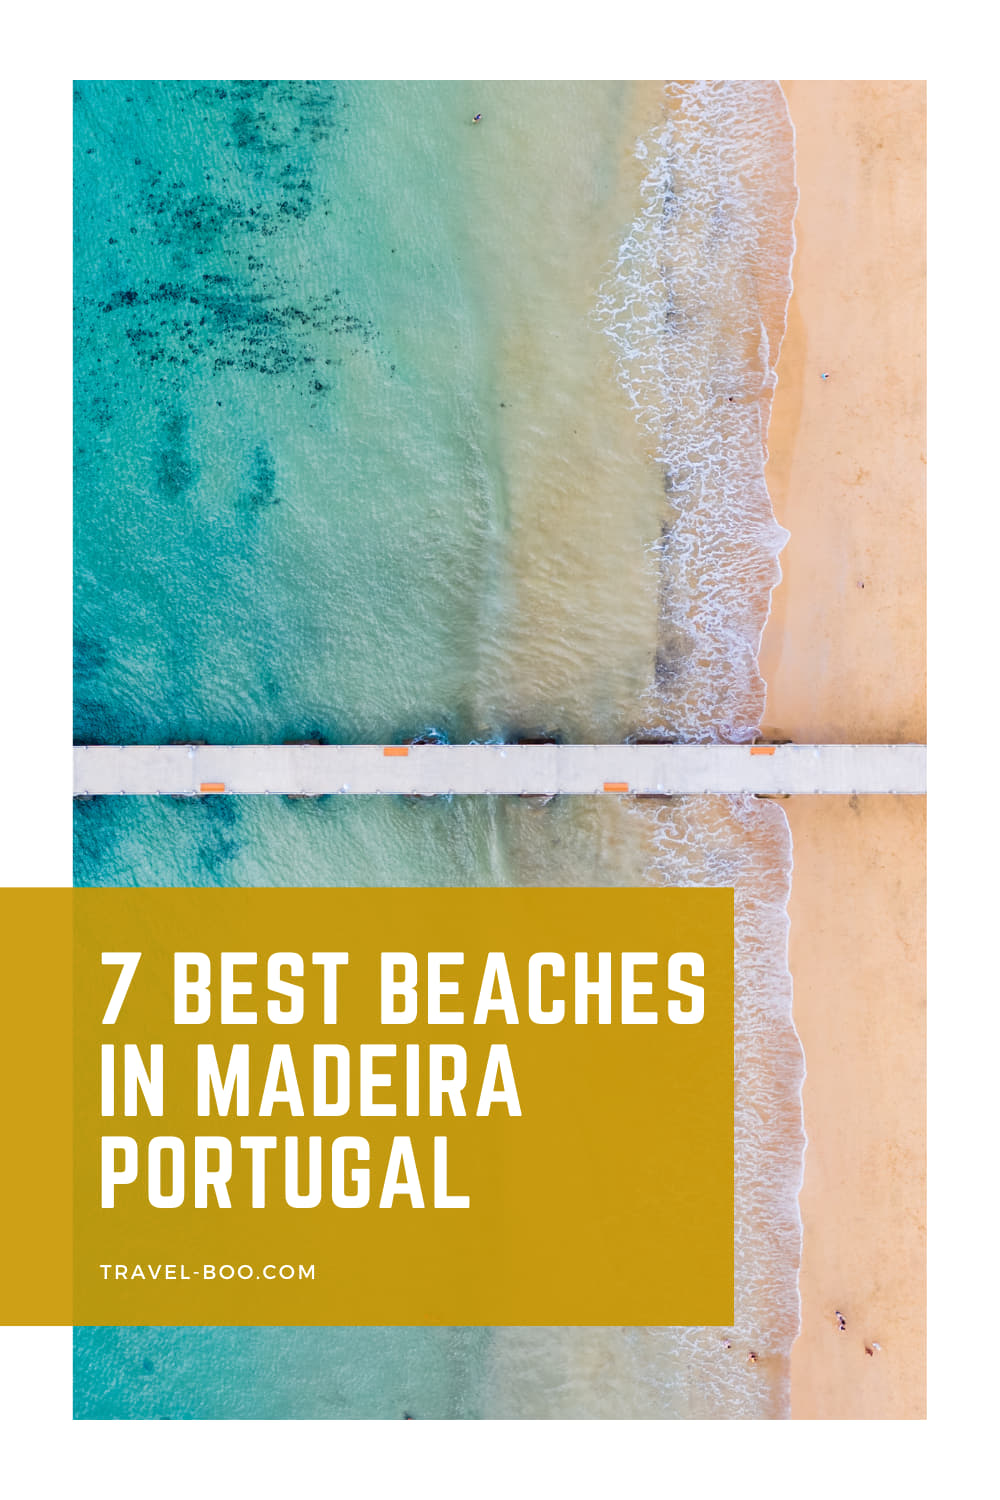 7 Best beaches in Madeira Worth Exploring! Portugal Travel, Madeira Portugal, Madeira Travel Itinerary, Madeira Travel, Madeira Beaches, Beaches in Portugal, Beaches in Madeira